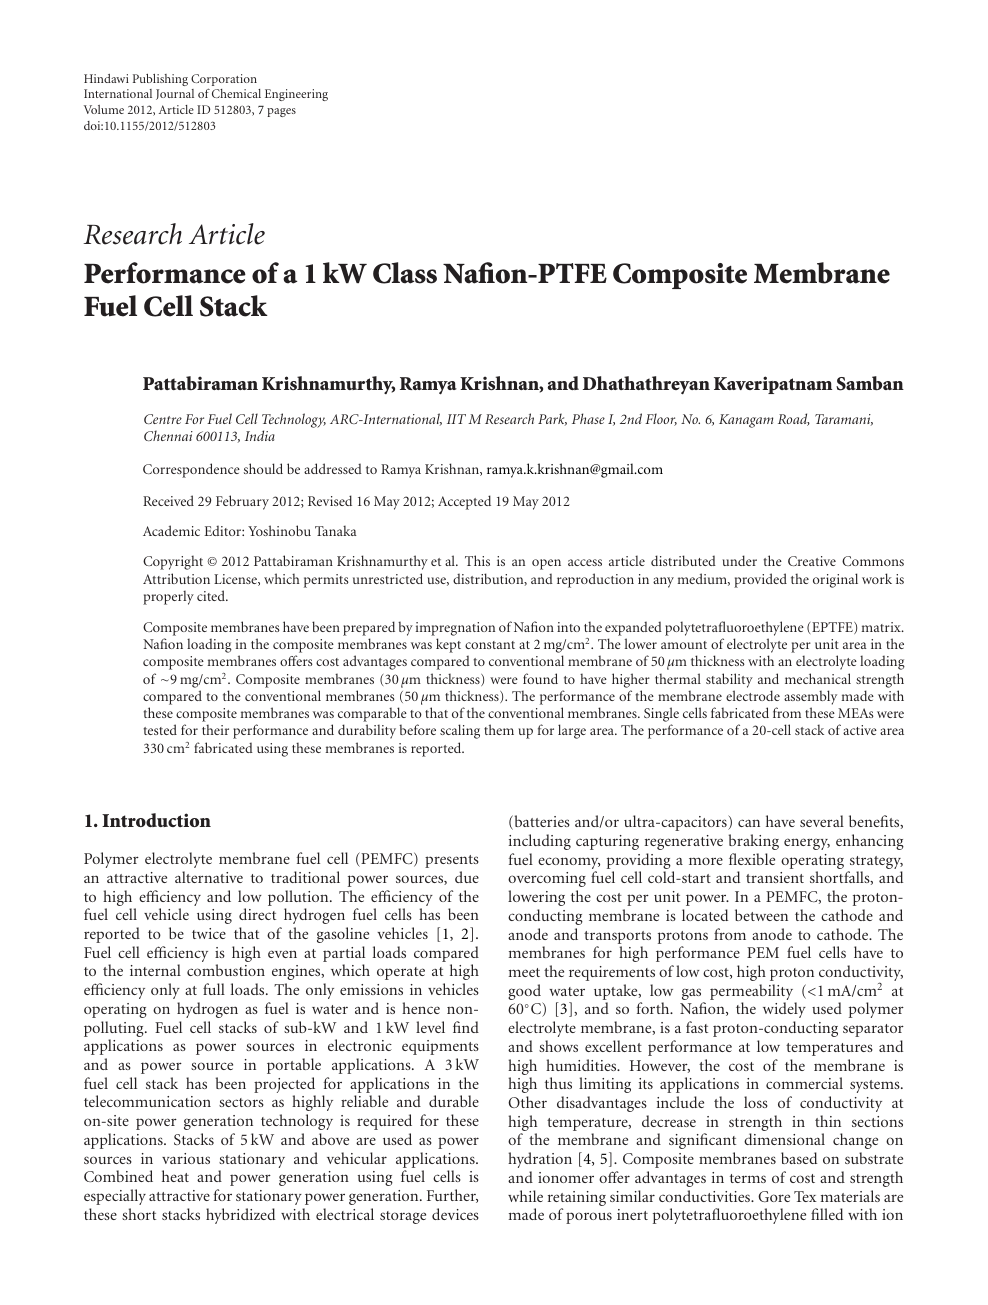 Performance of a 1 kW Class Nafion-PTFE Composite Membrane Fuel Cell